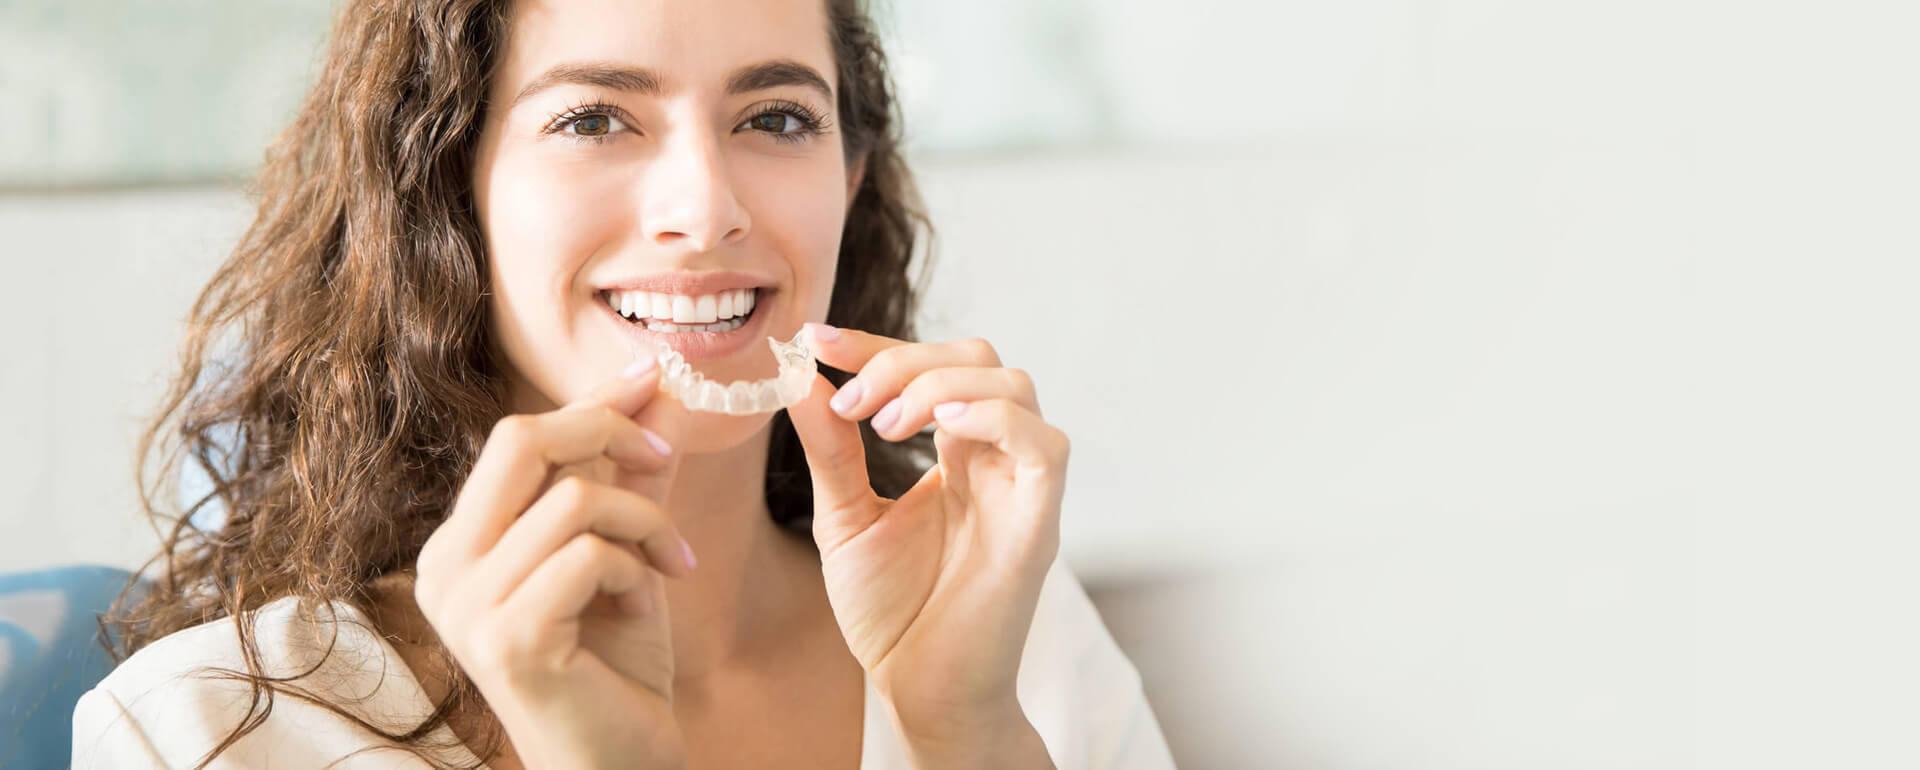 Start Invisalign for $0 Down and as low as $99 a month